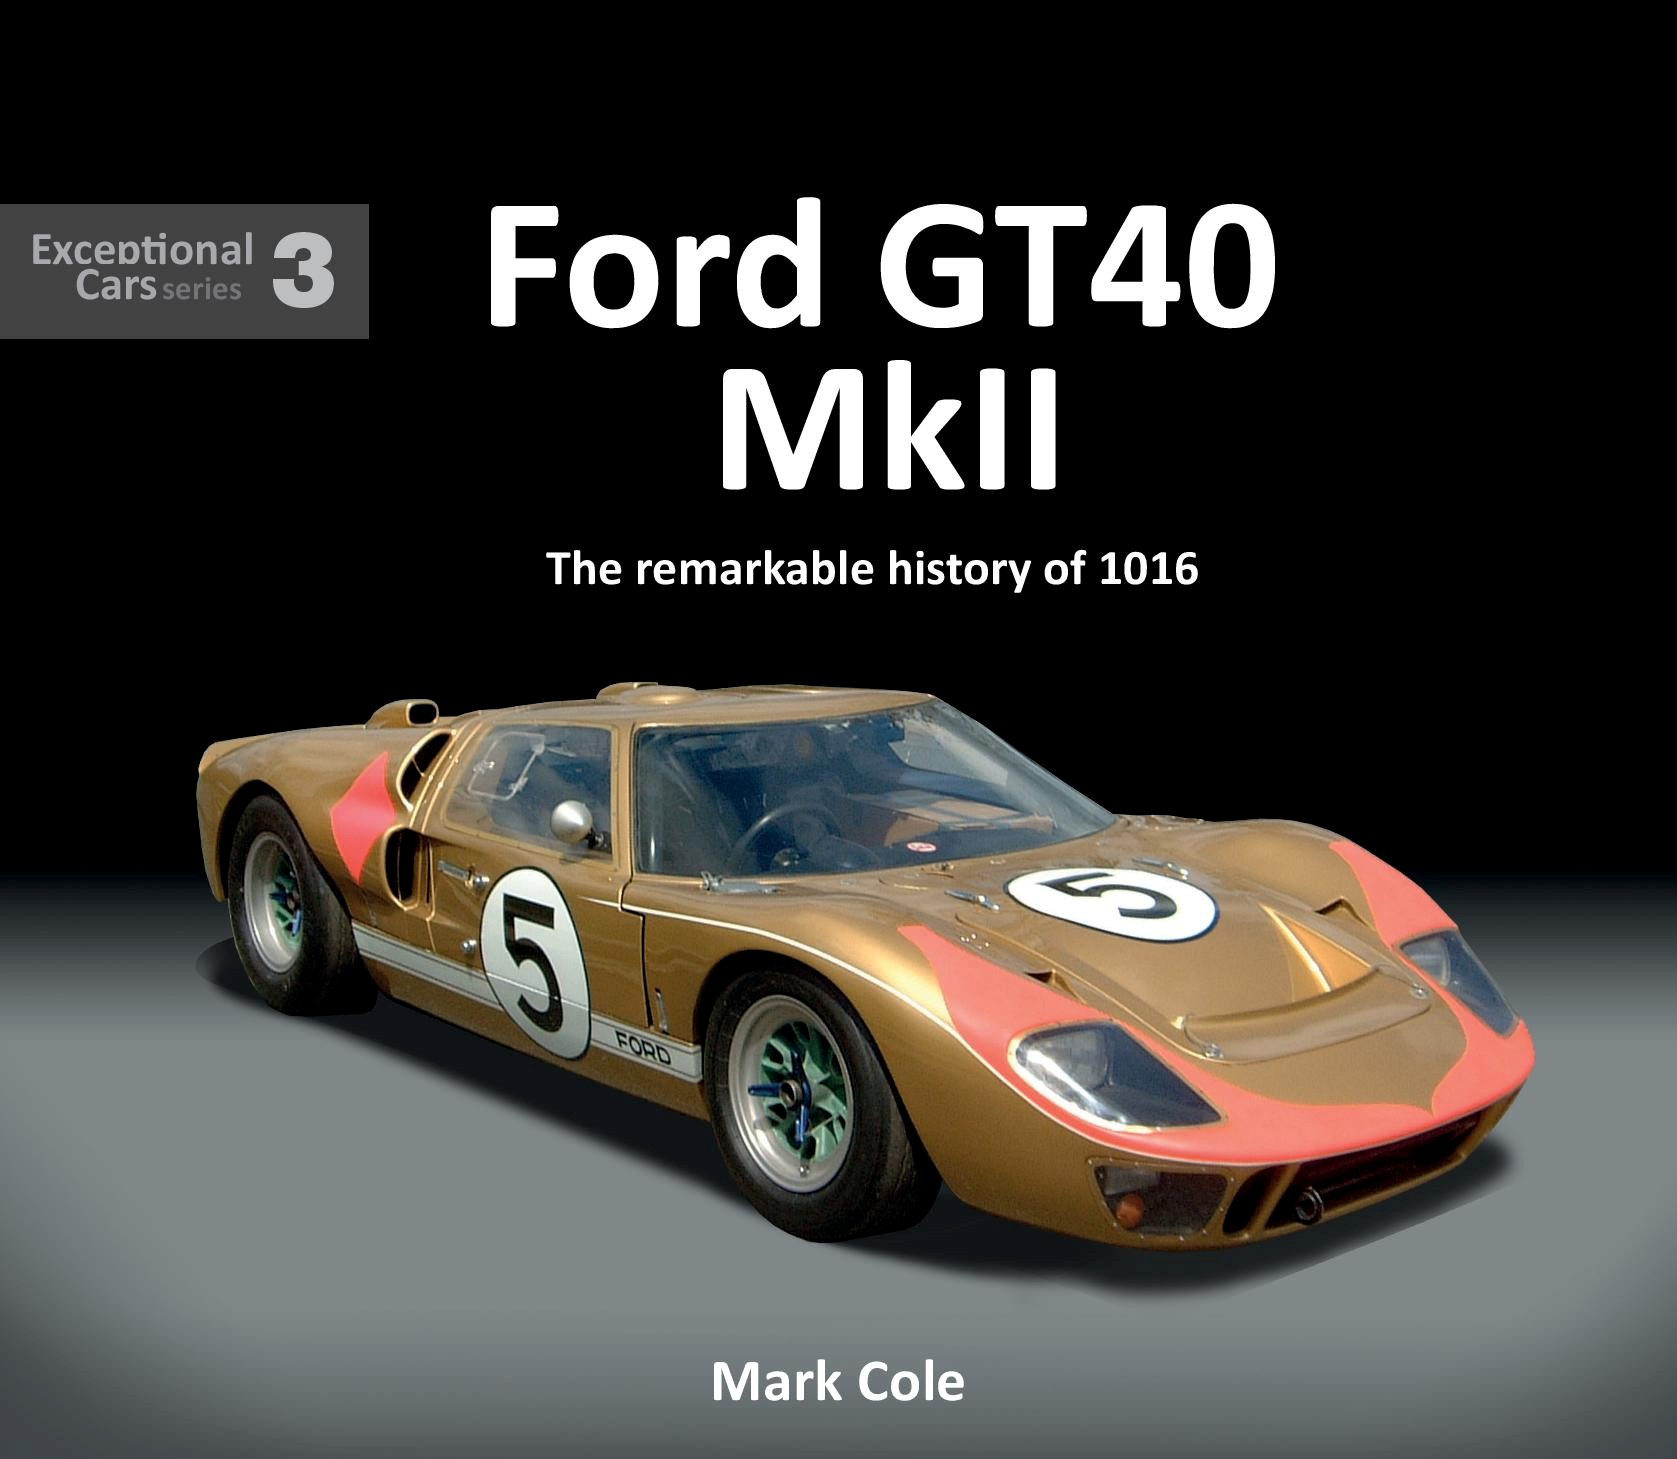 Ford GT40 MKII: The remarkable history of the 1016